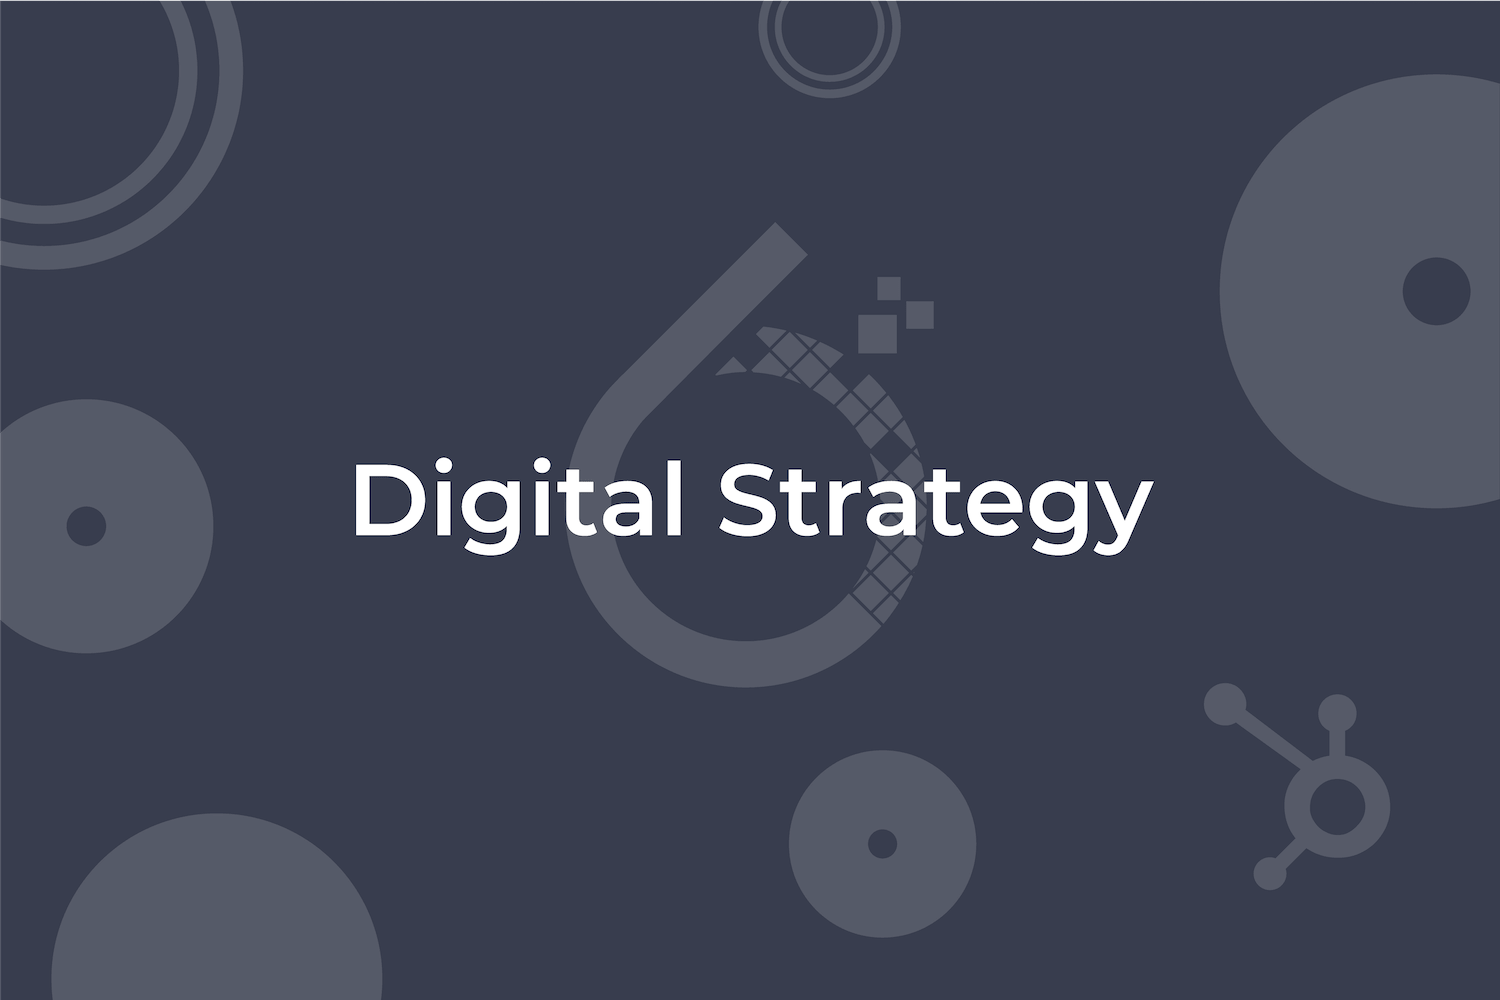 6teen30 Digital - Growth Driven Design - Digital Strategy